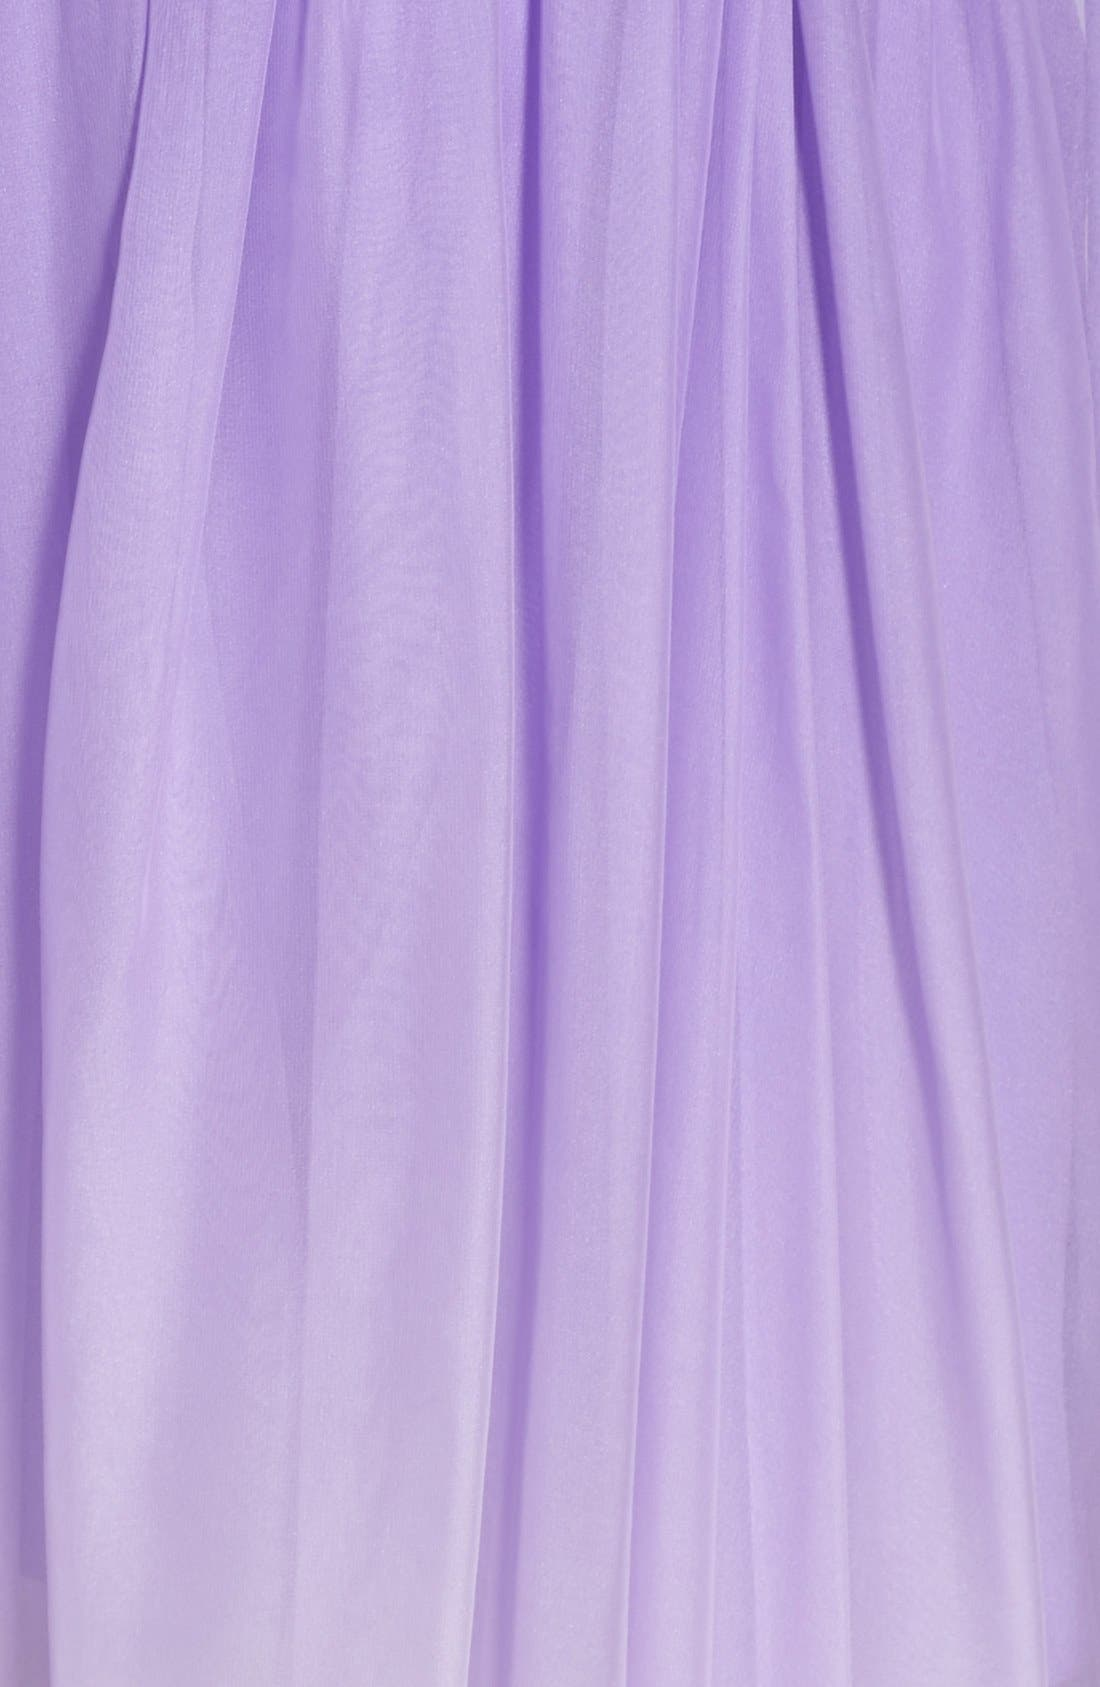 Ombré Chiffon Gown,                             Alternate thumbnail 3, color,                             530